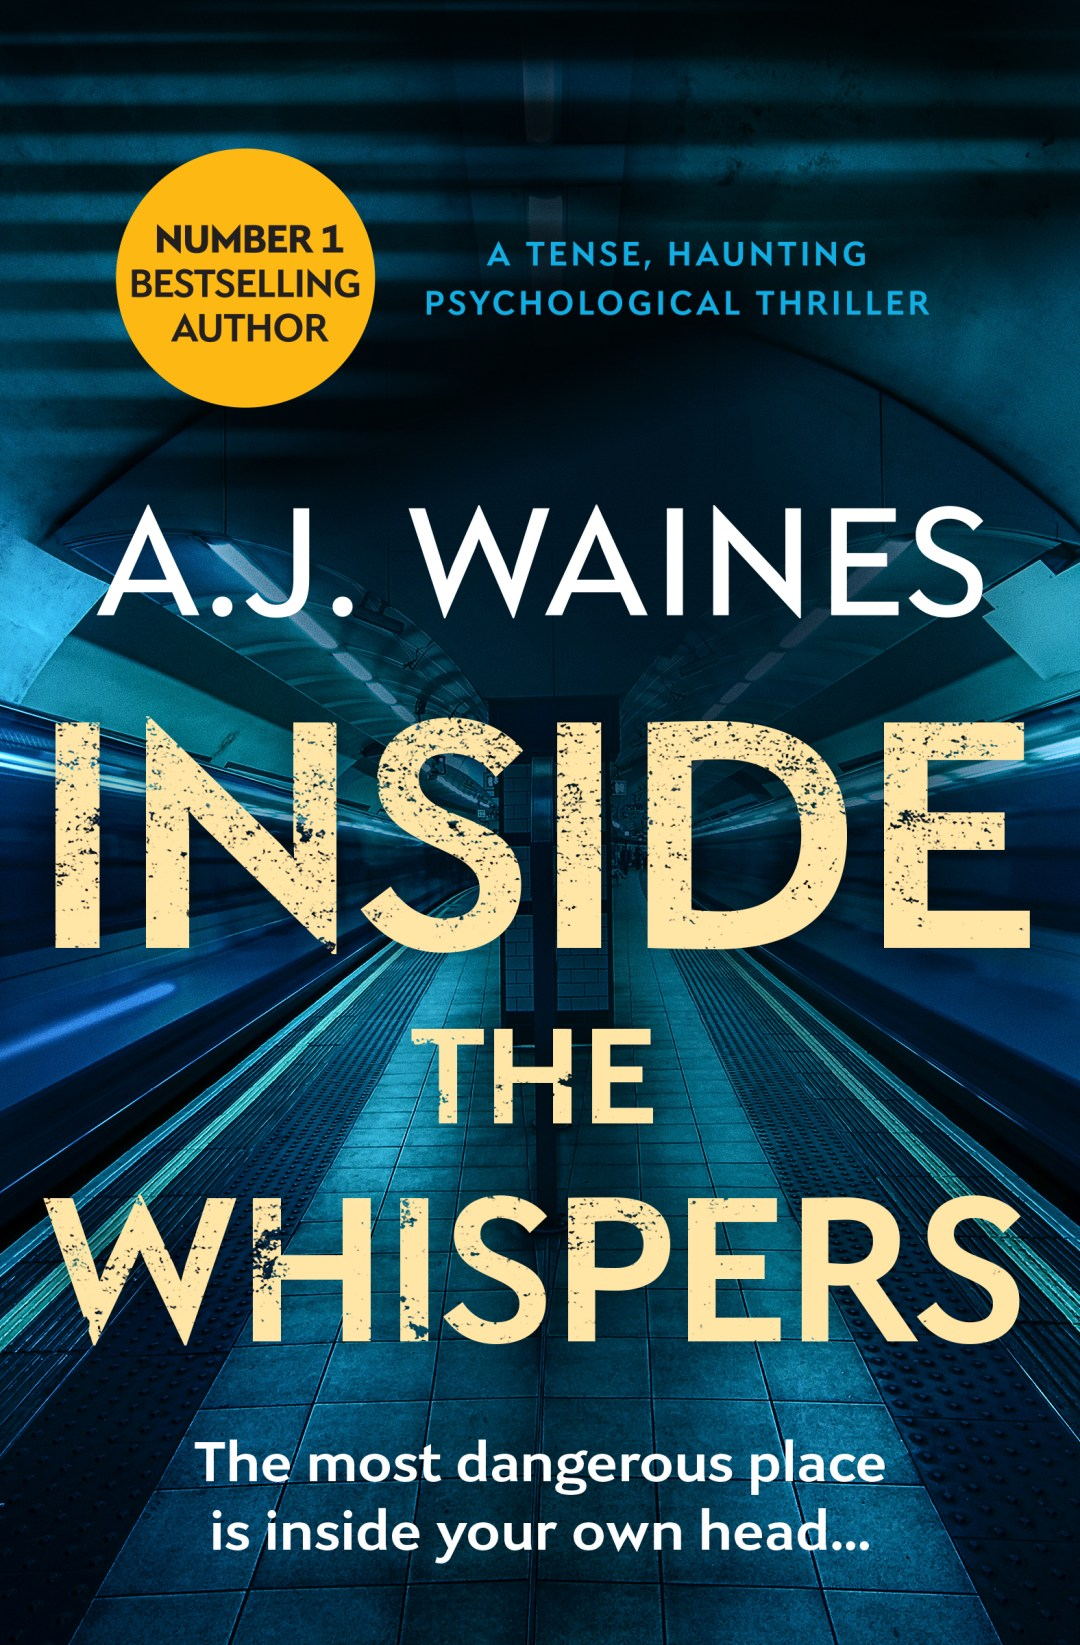 #BookReview of Inside the Whispers by AJ Waines @ajwaines @bloodhoundbook